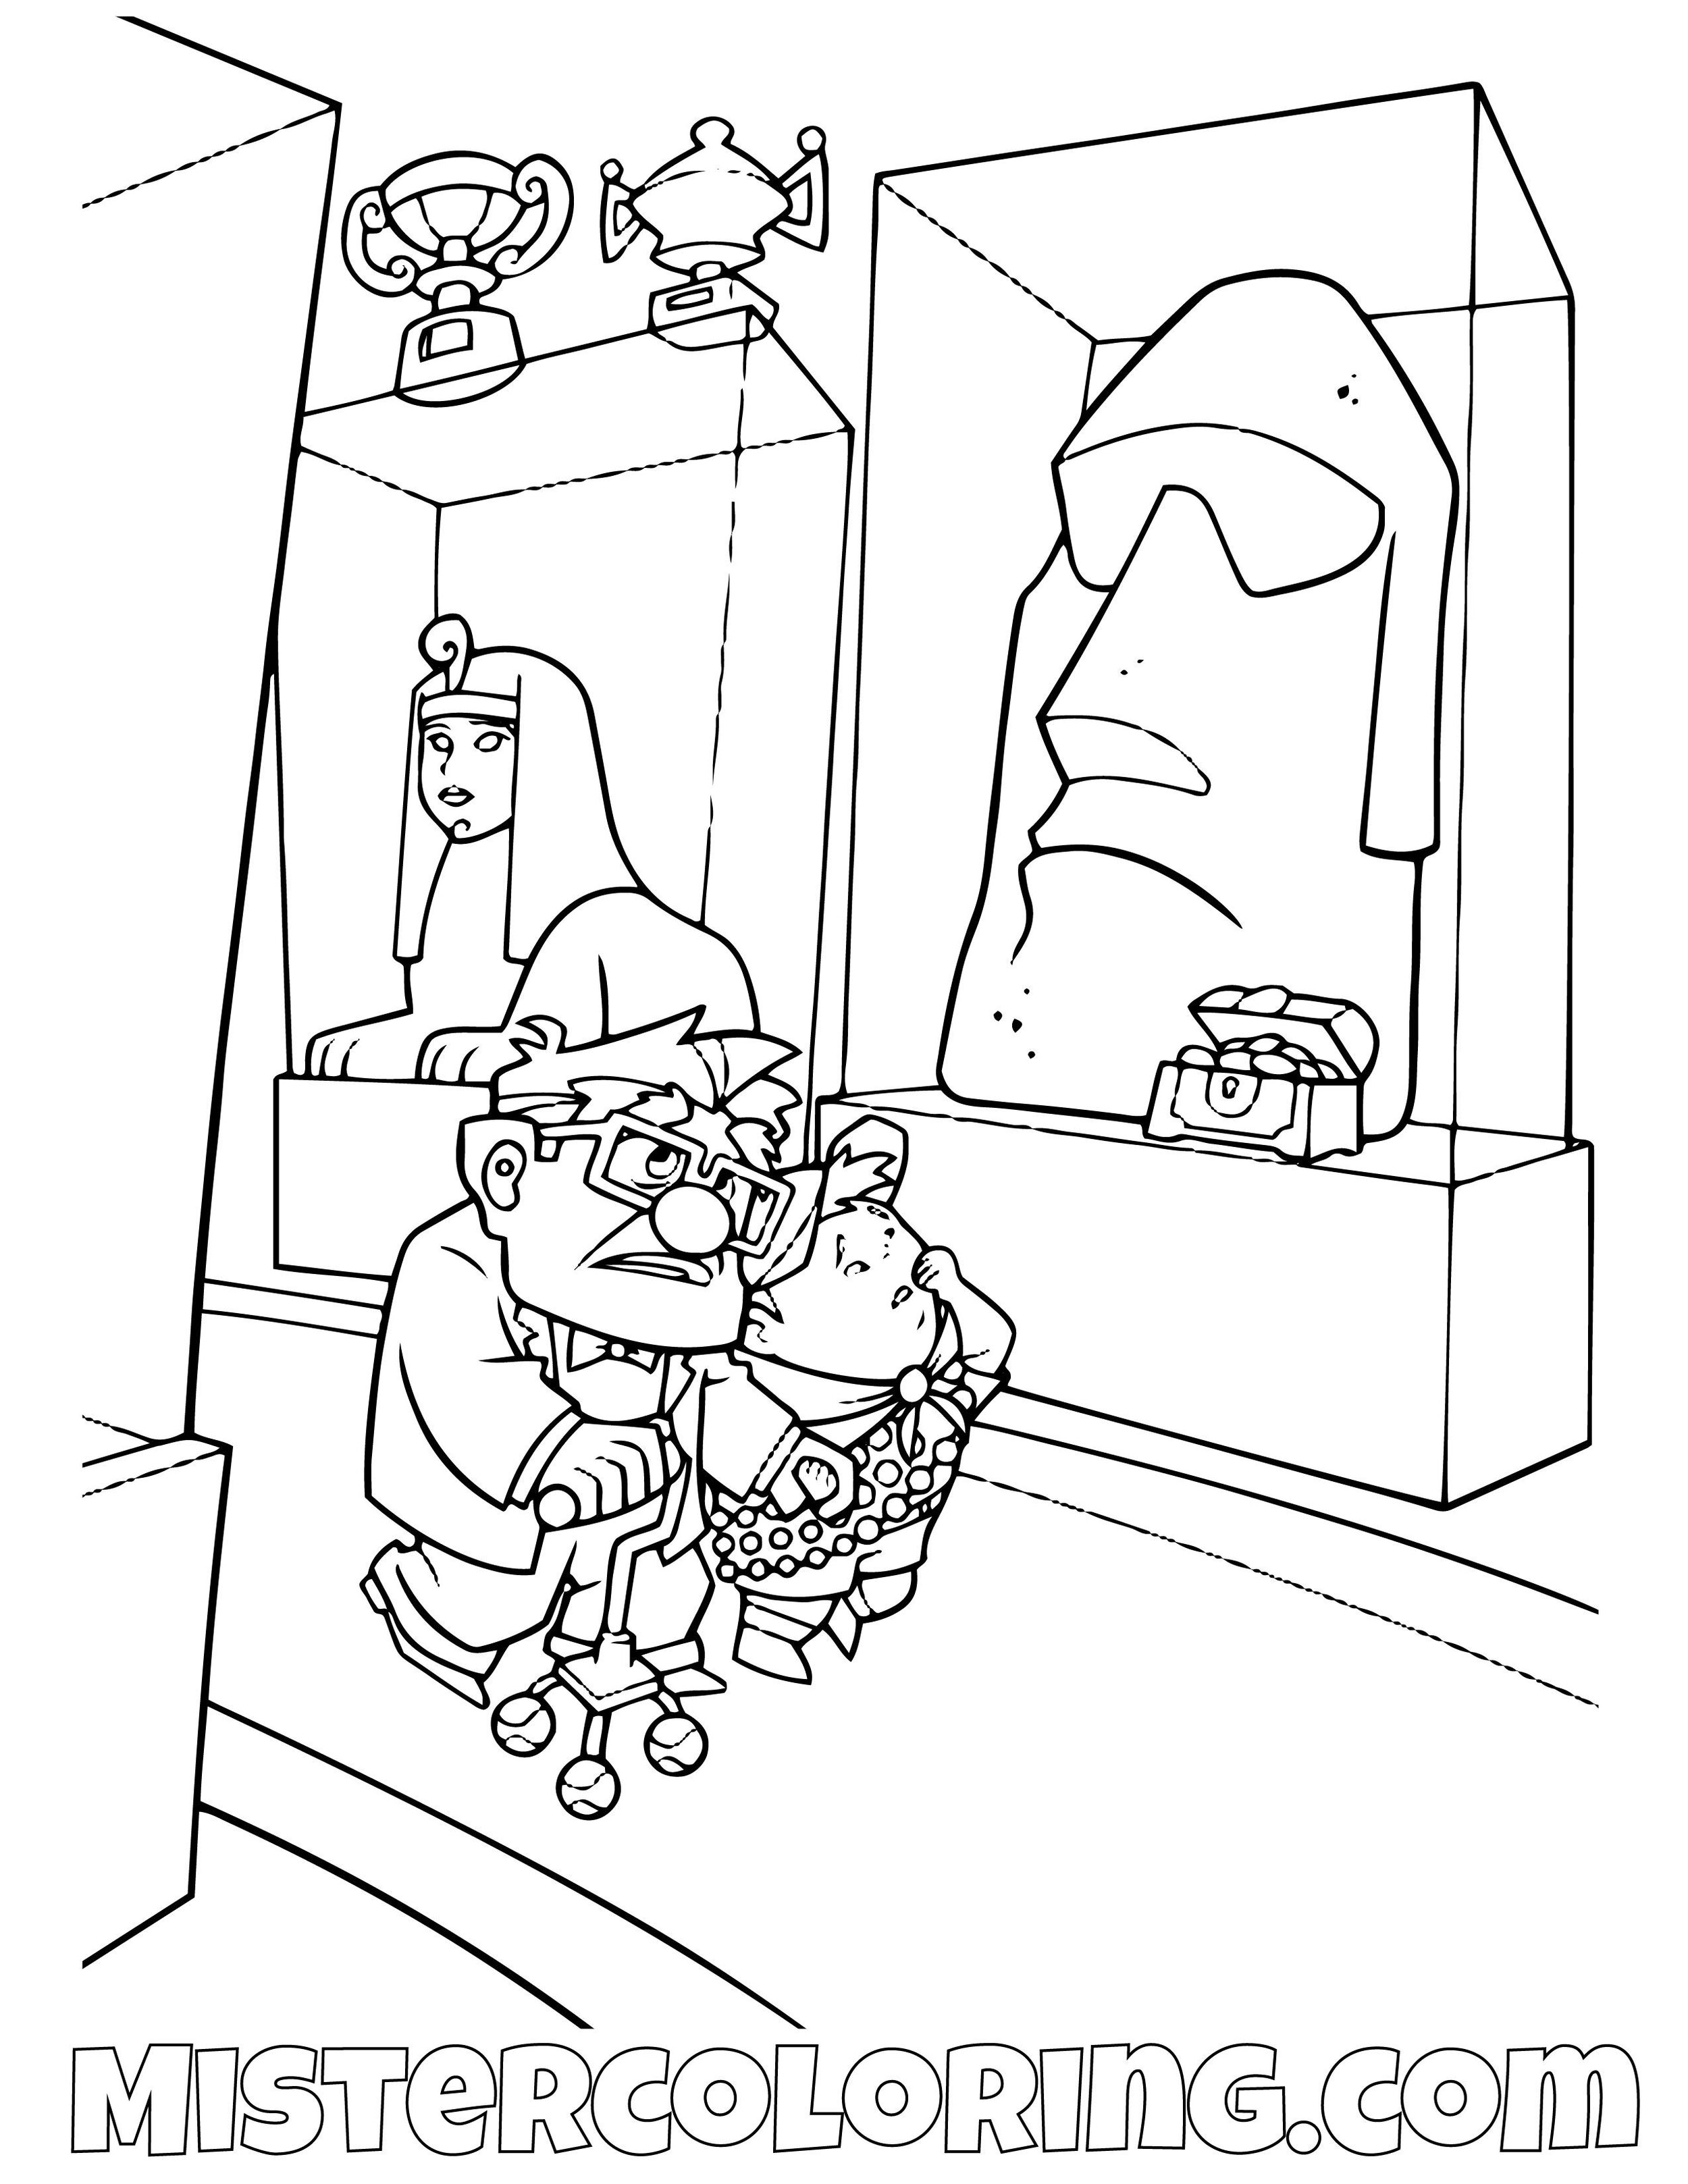 Carl Fredricksen And Russell Walking Disney Pixar Up Movie Coloring Pages For Kids